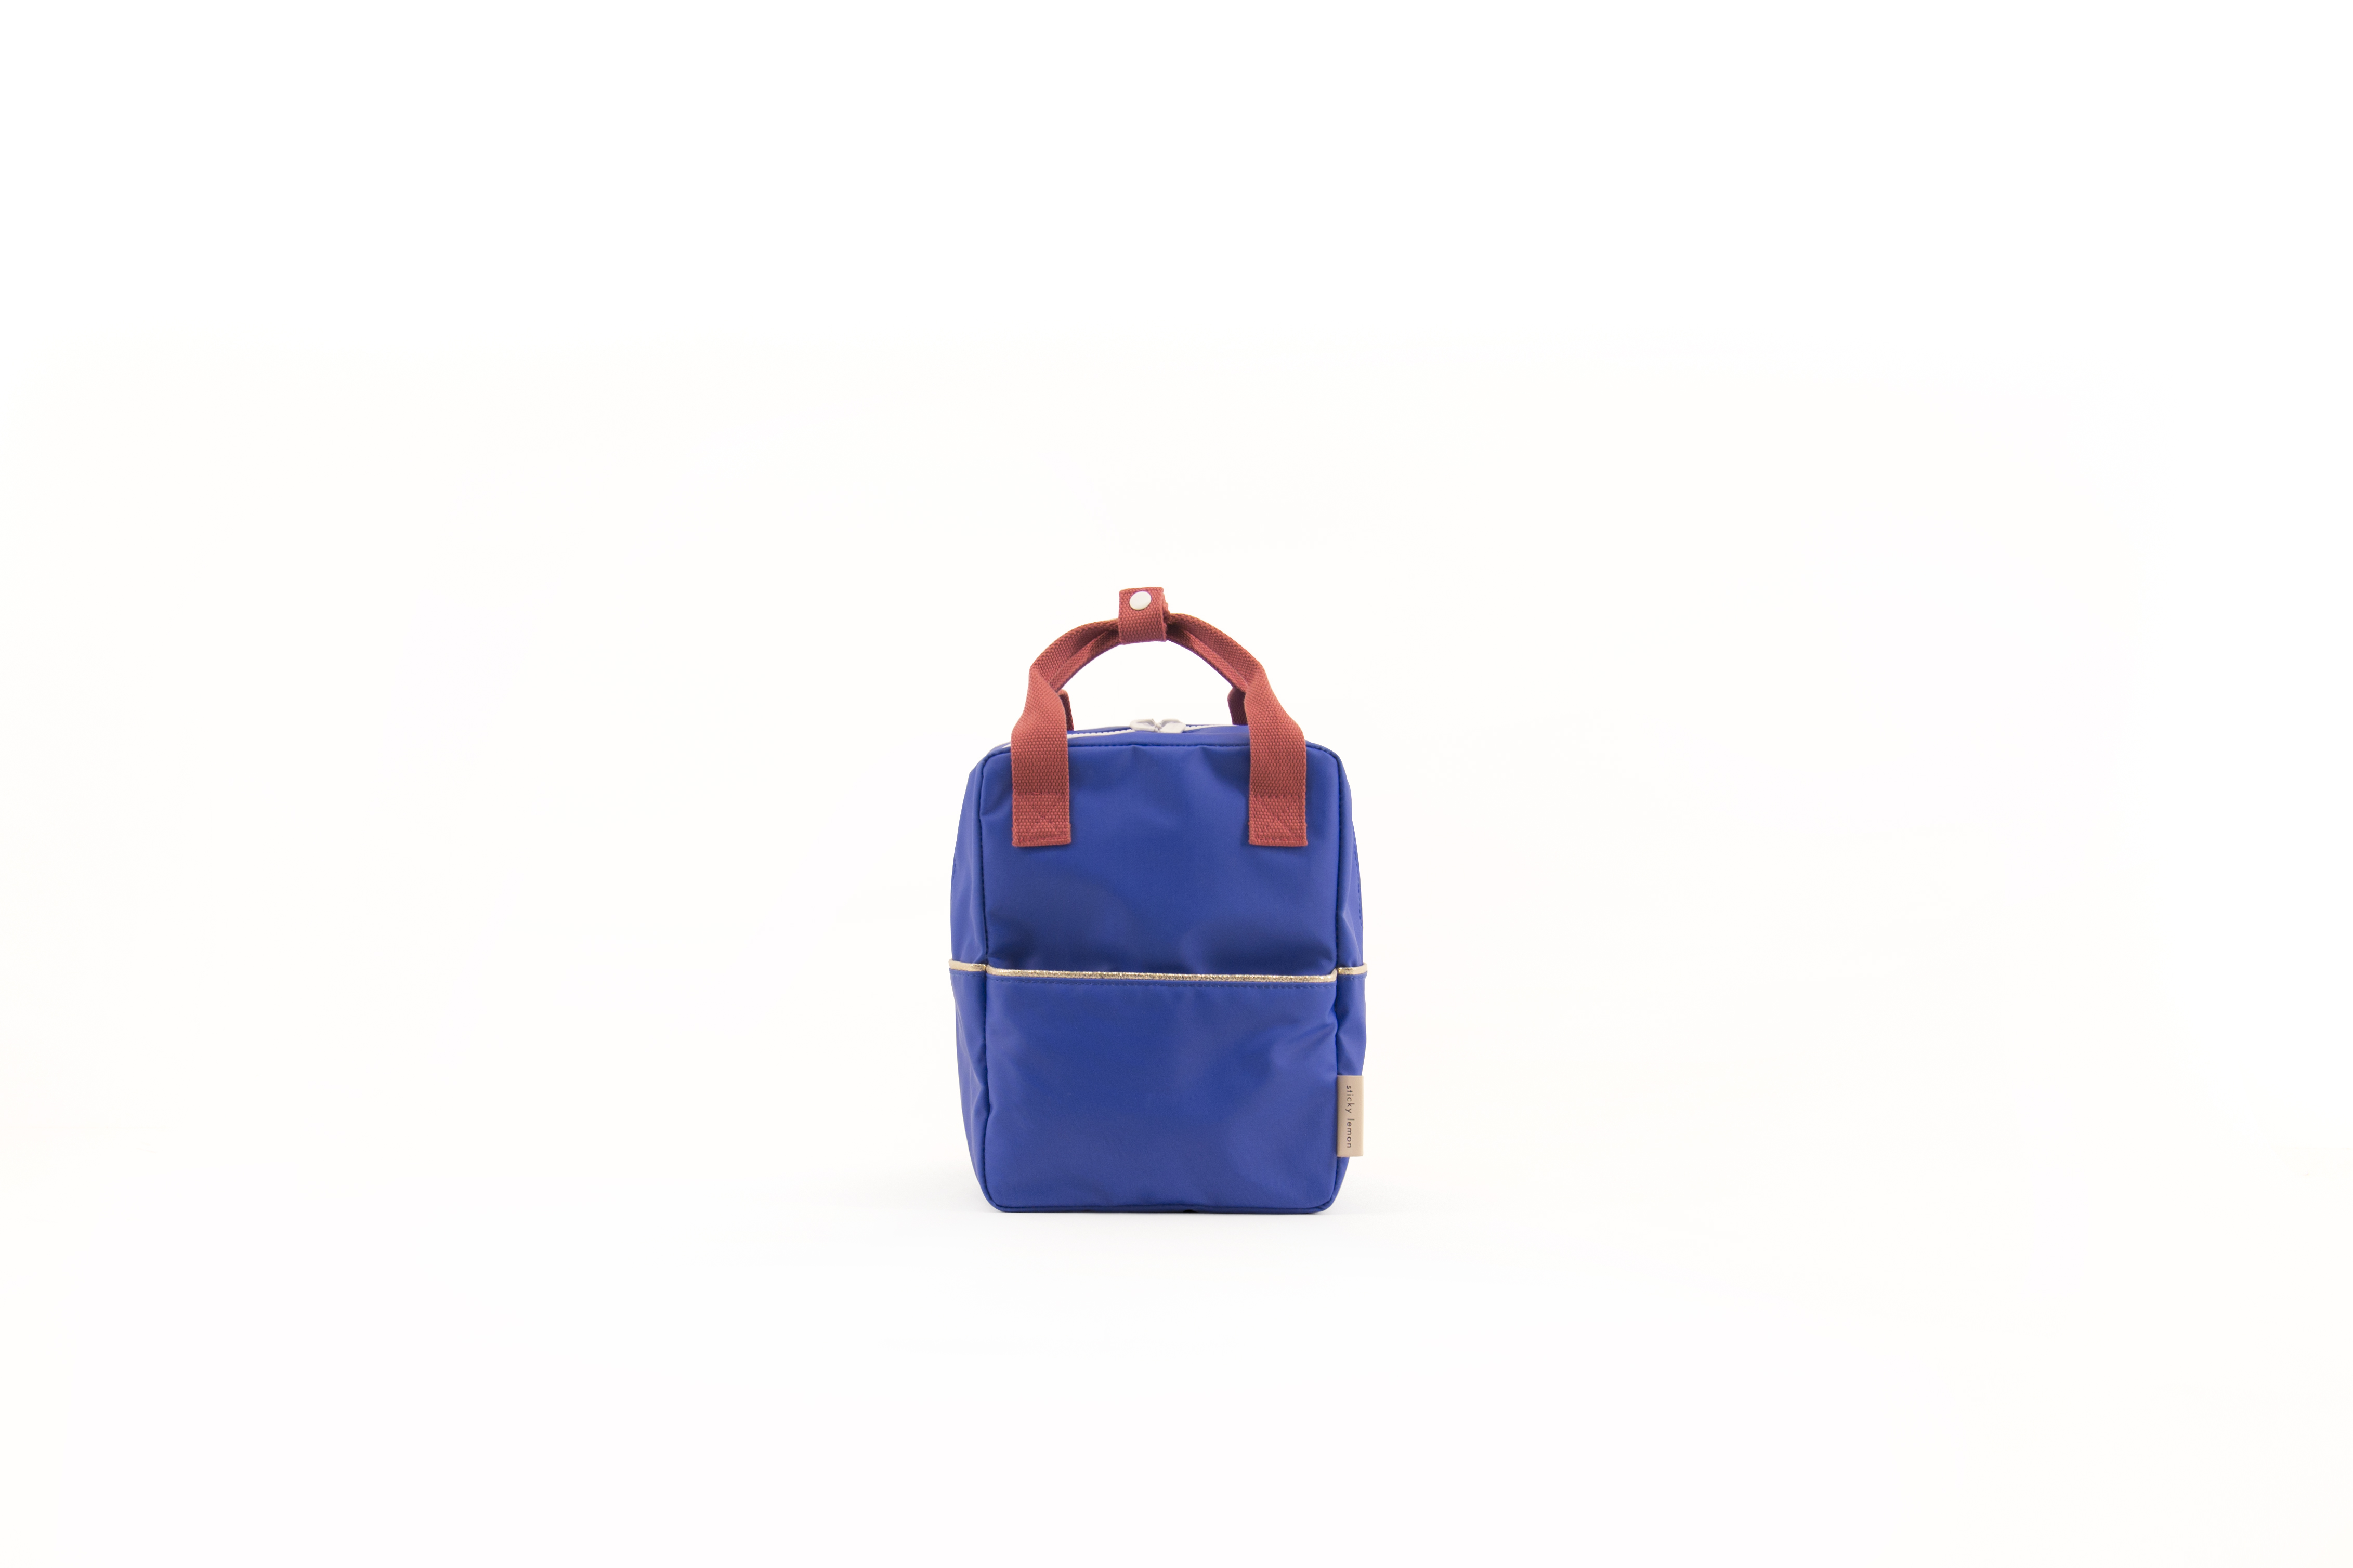 Sticky Lemon Blue - Backpack Small - Ink Blue - Accessories